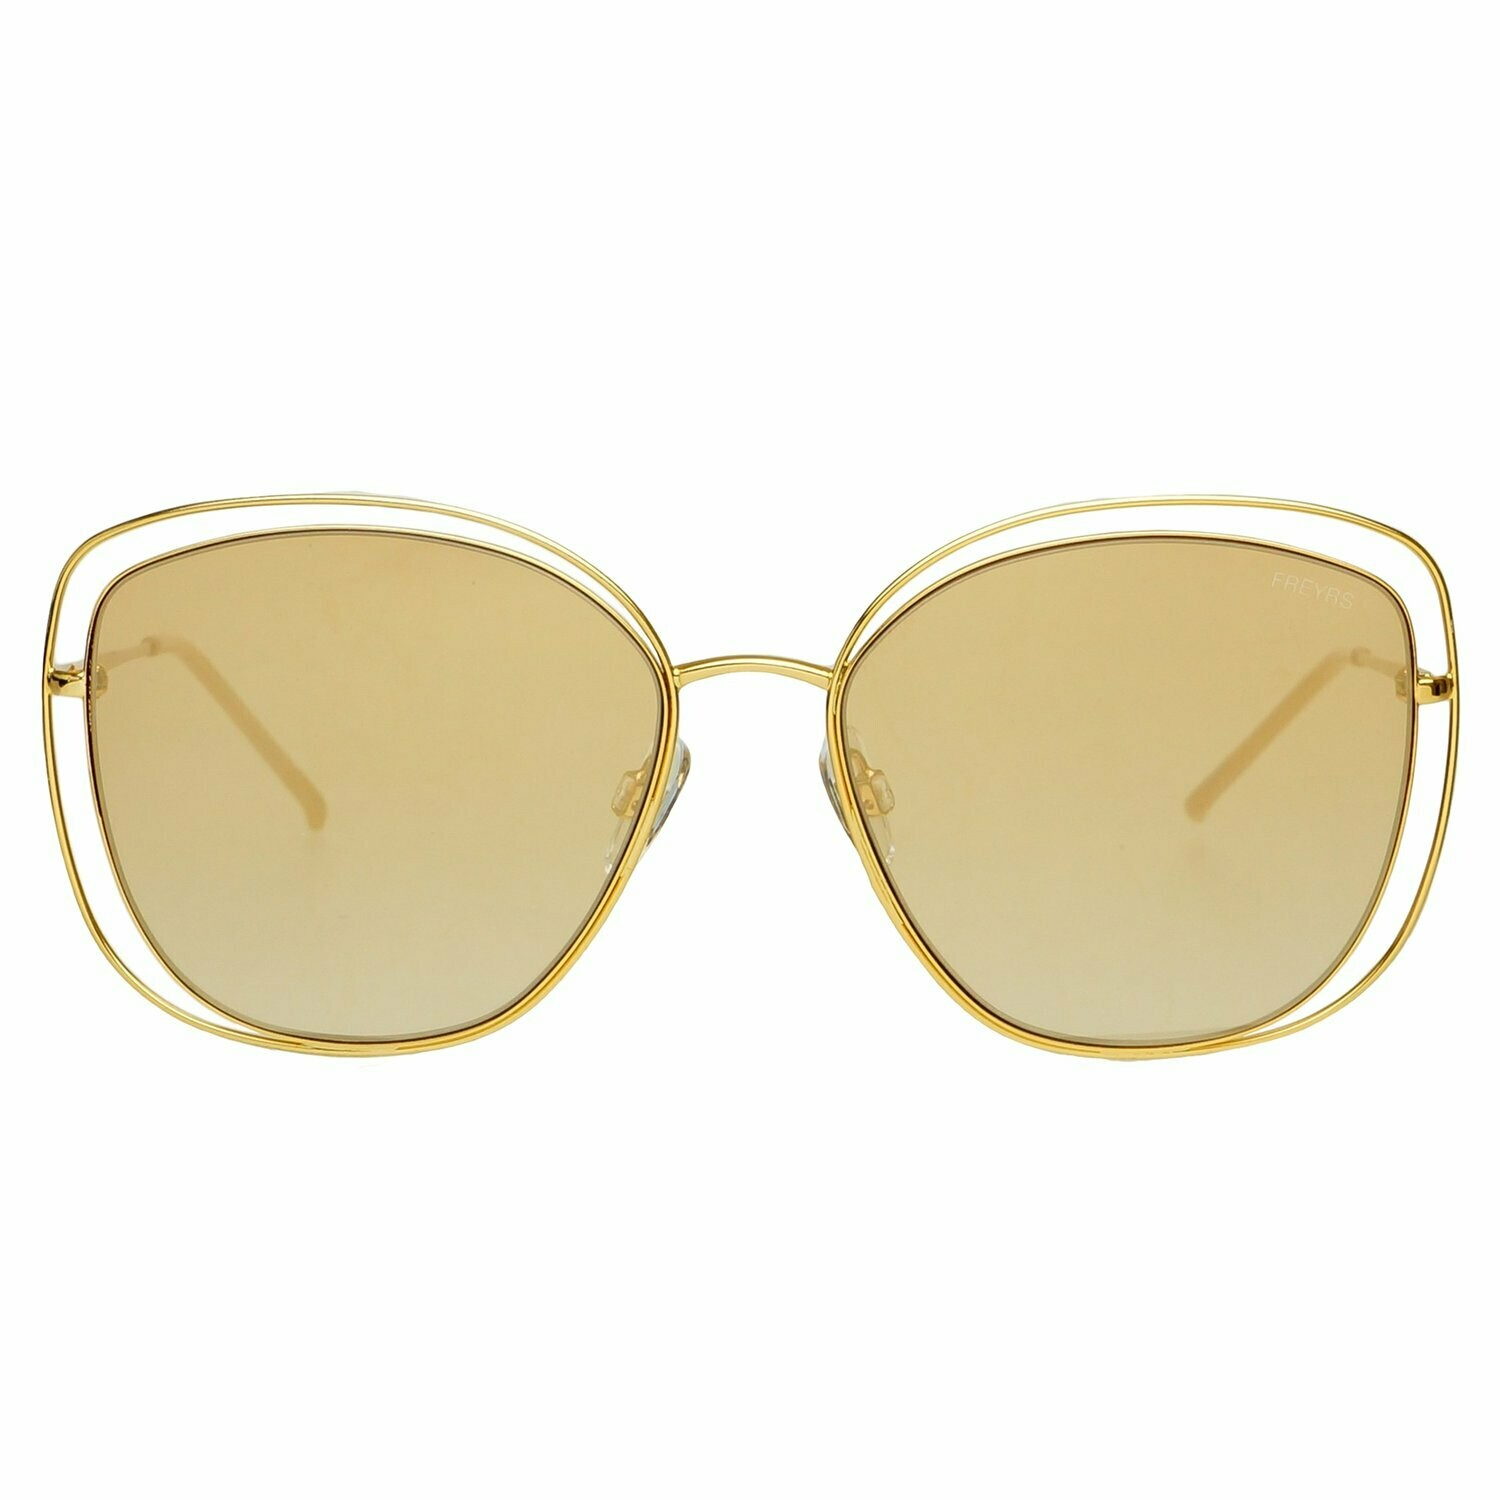 Golden Girl Sunglasses